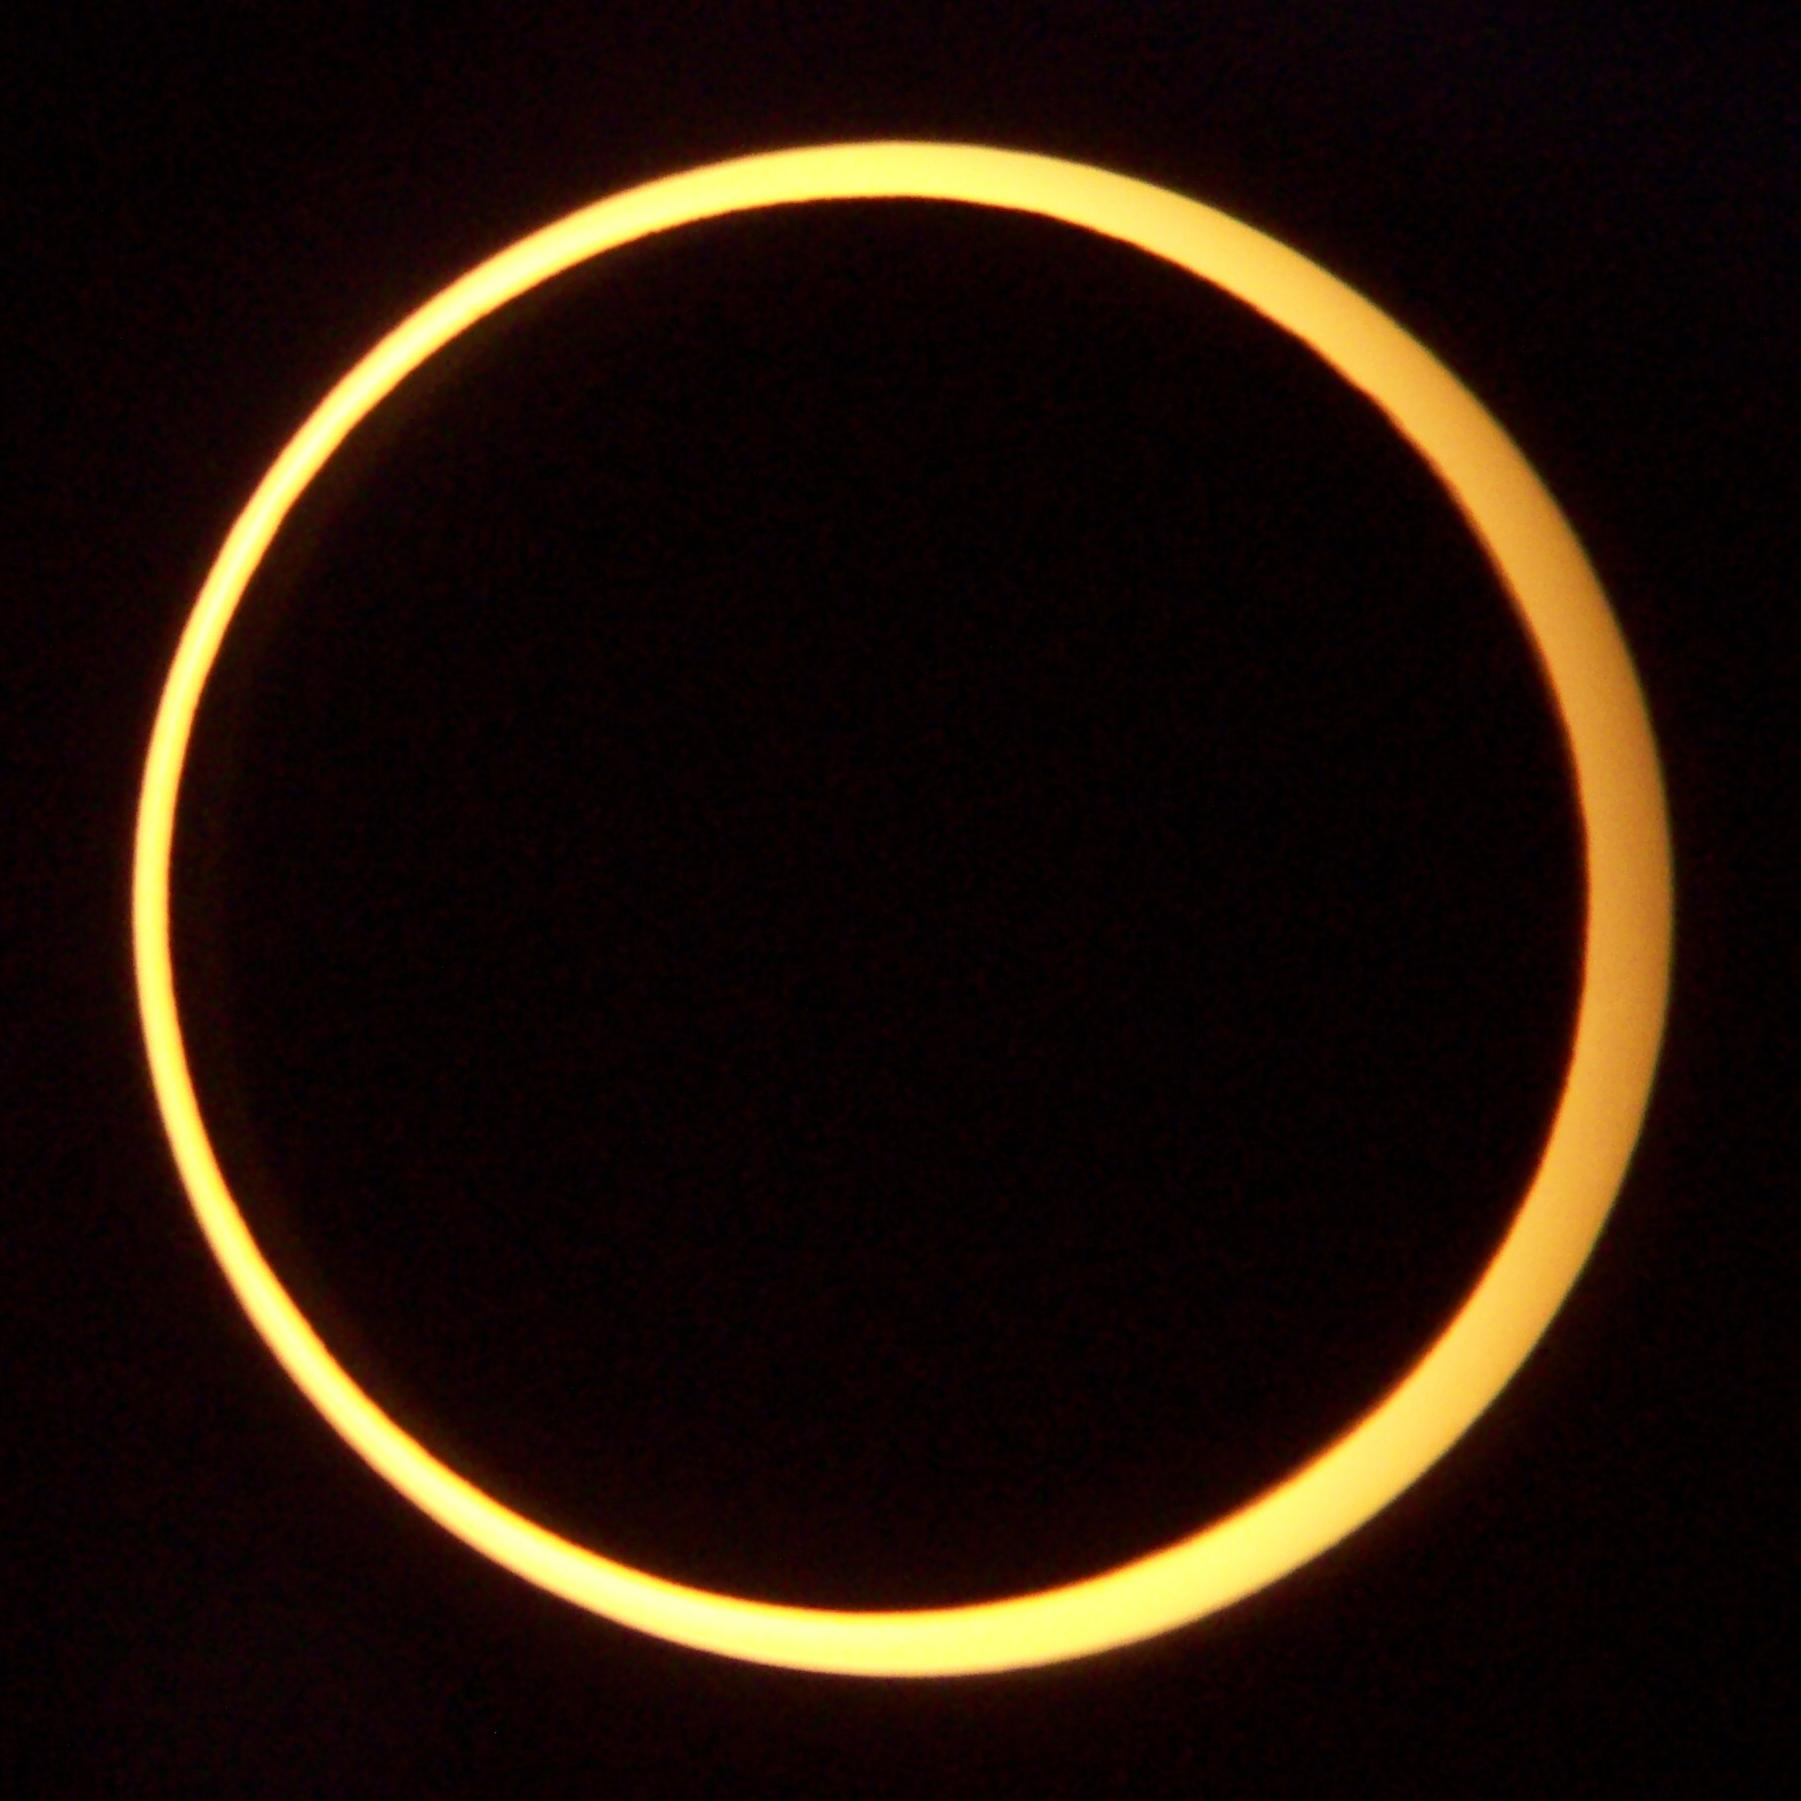 Annular_Eclipse._Taken_from_Middlegate,_Nevada_on_May_20,_2012.jpg